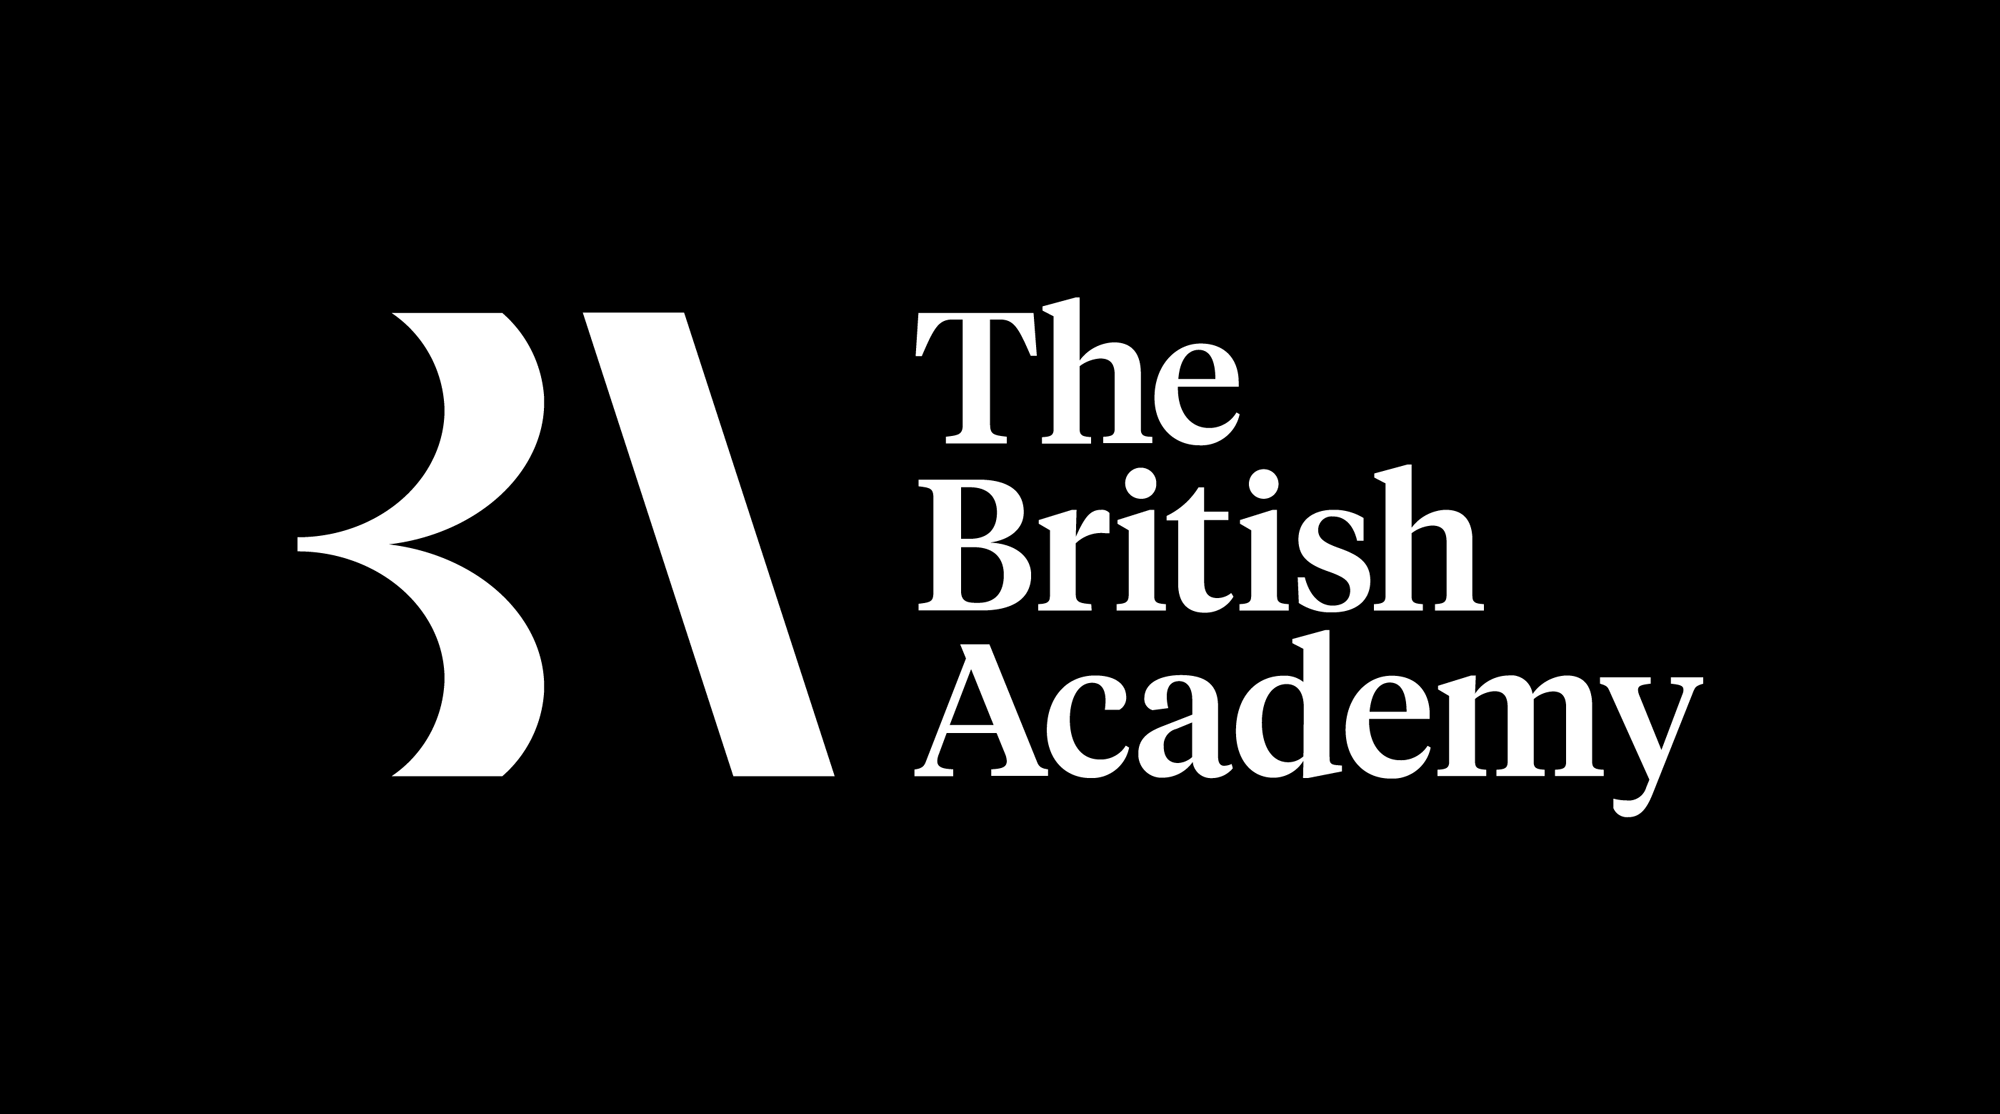 New Logo and Identity for The British Academy by Only